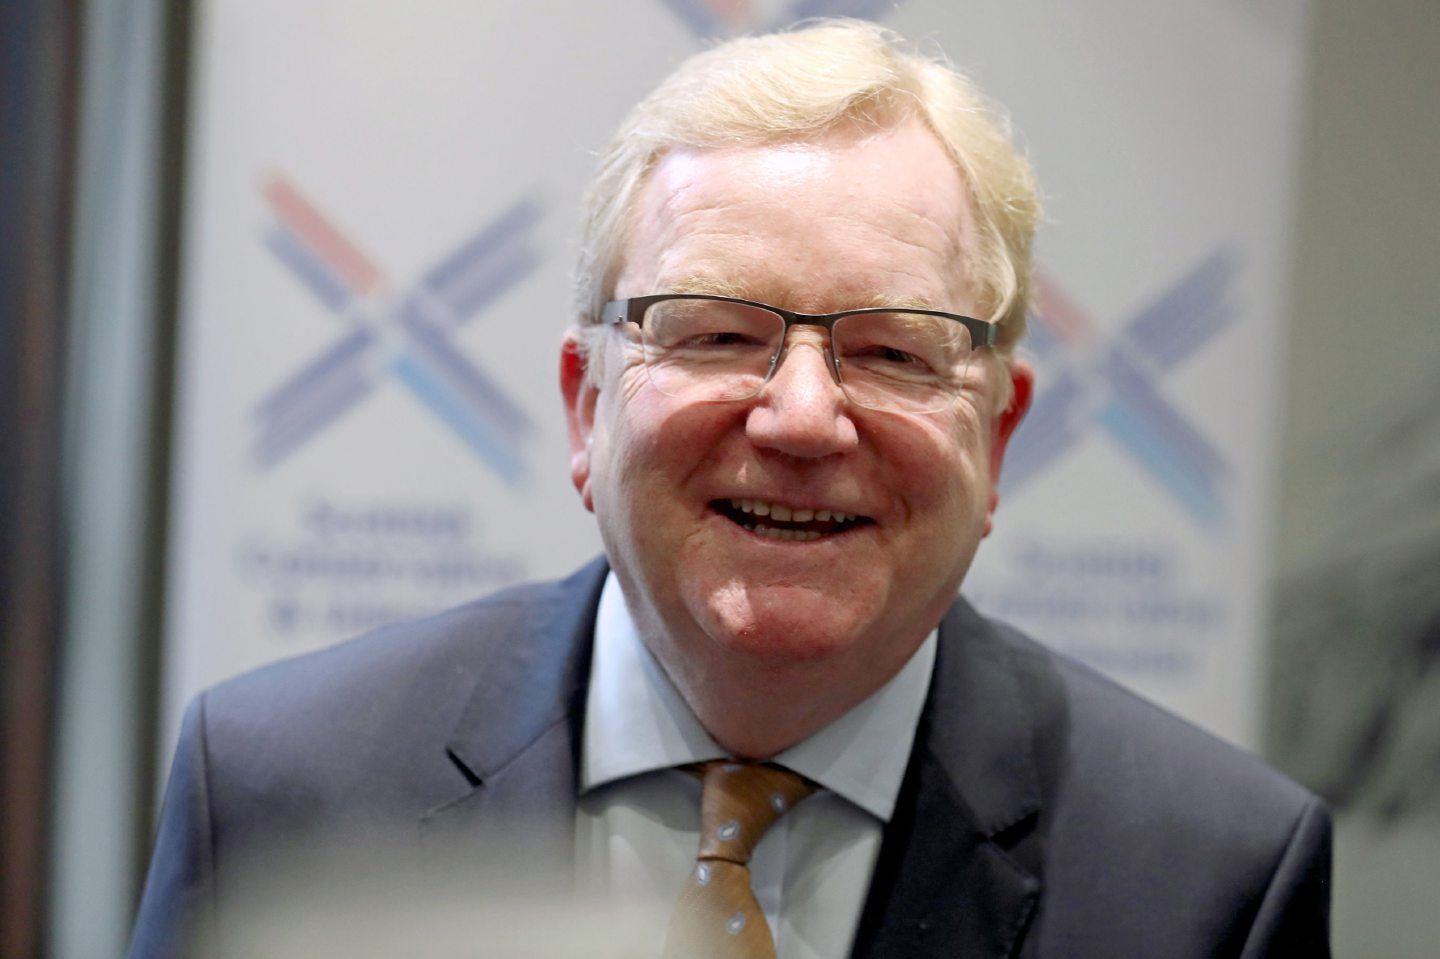 Leader of the Scottish Conservatives, Jackson Carlaw.